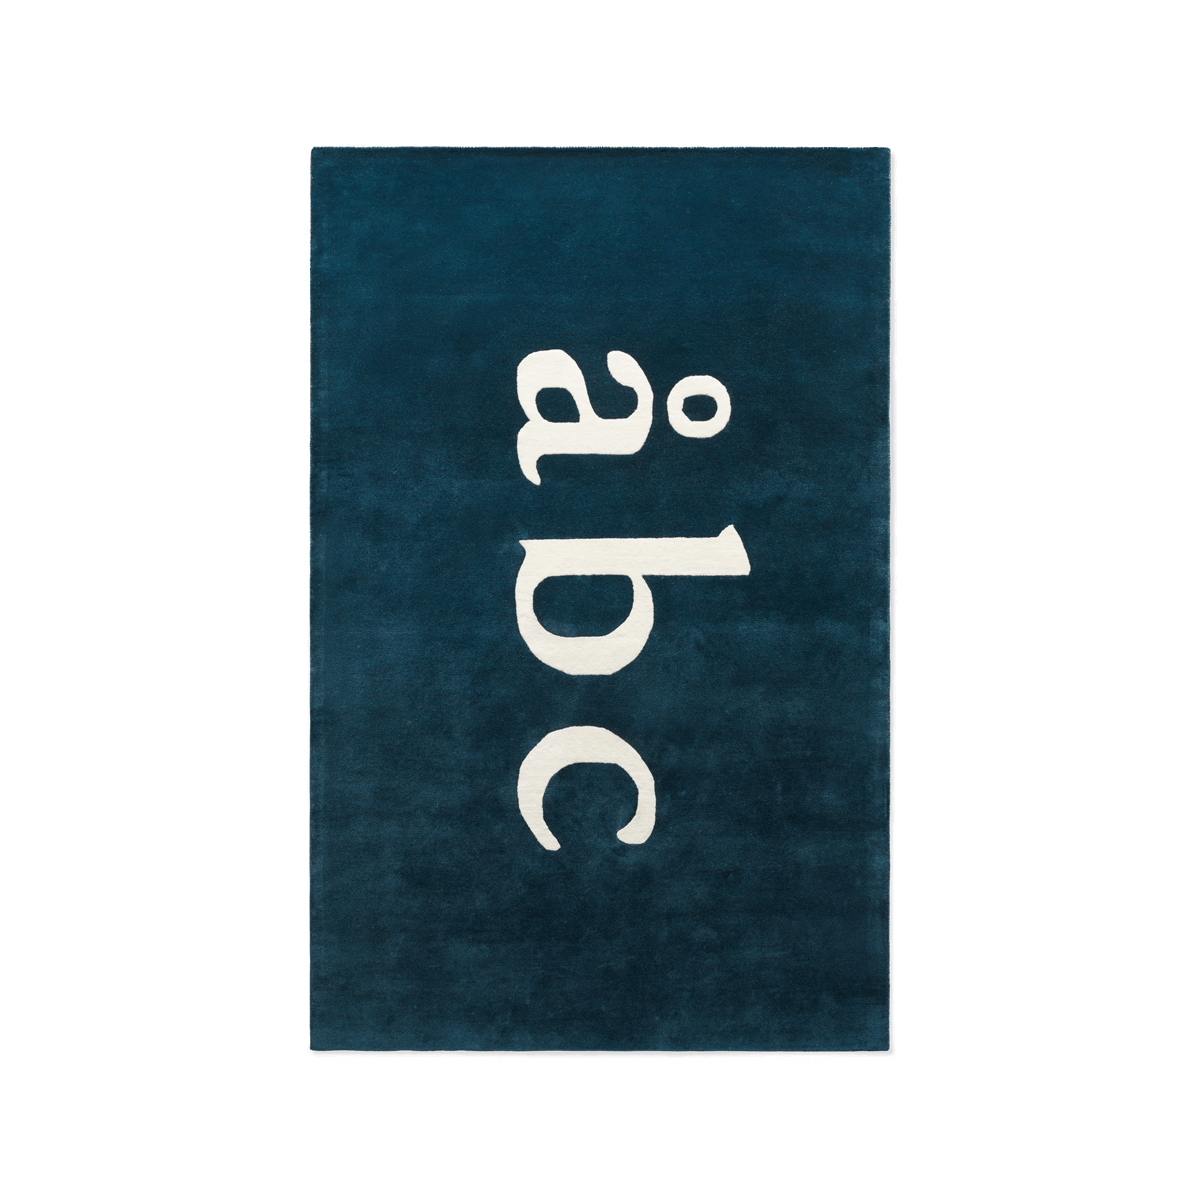 Product image of plush rug Åbc in color teal.